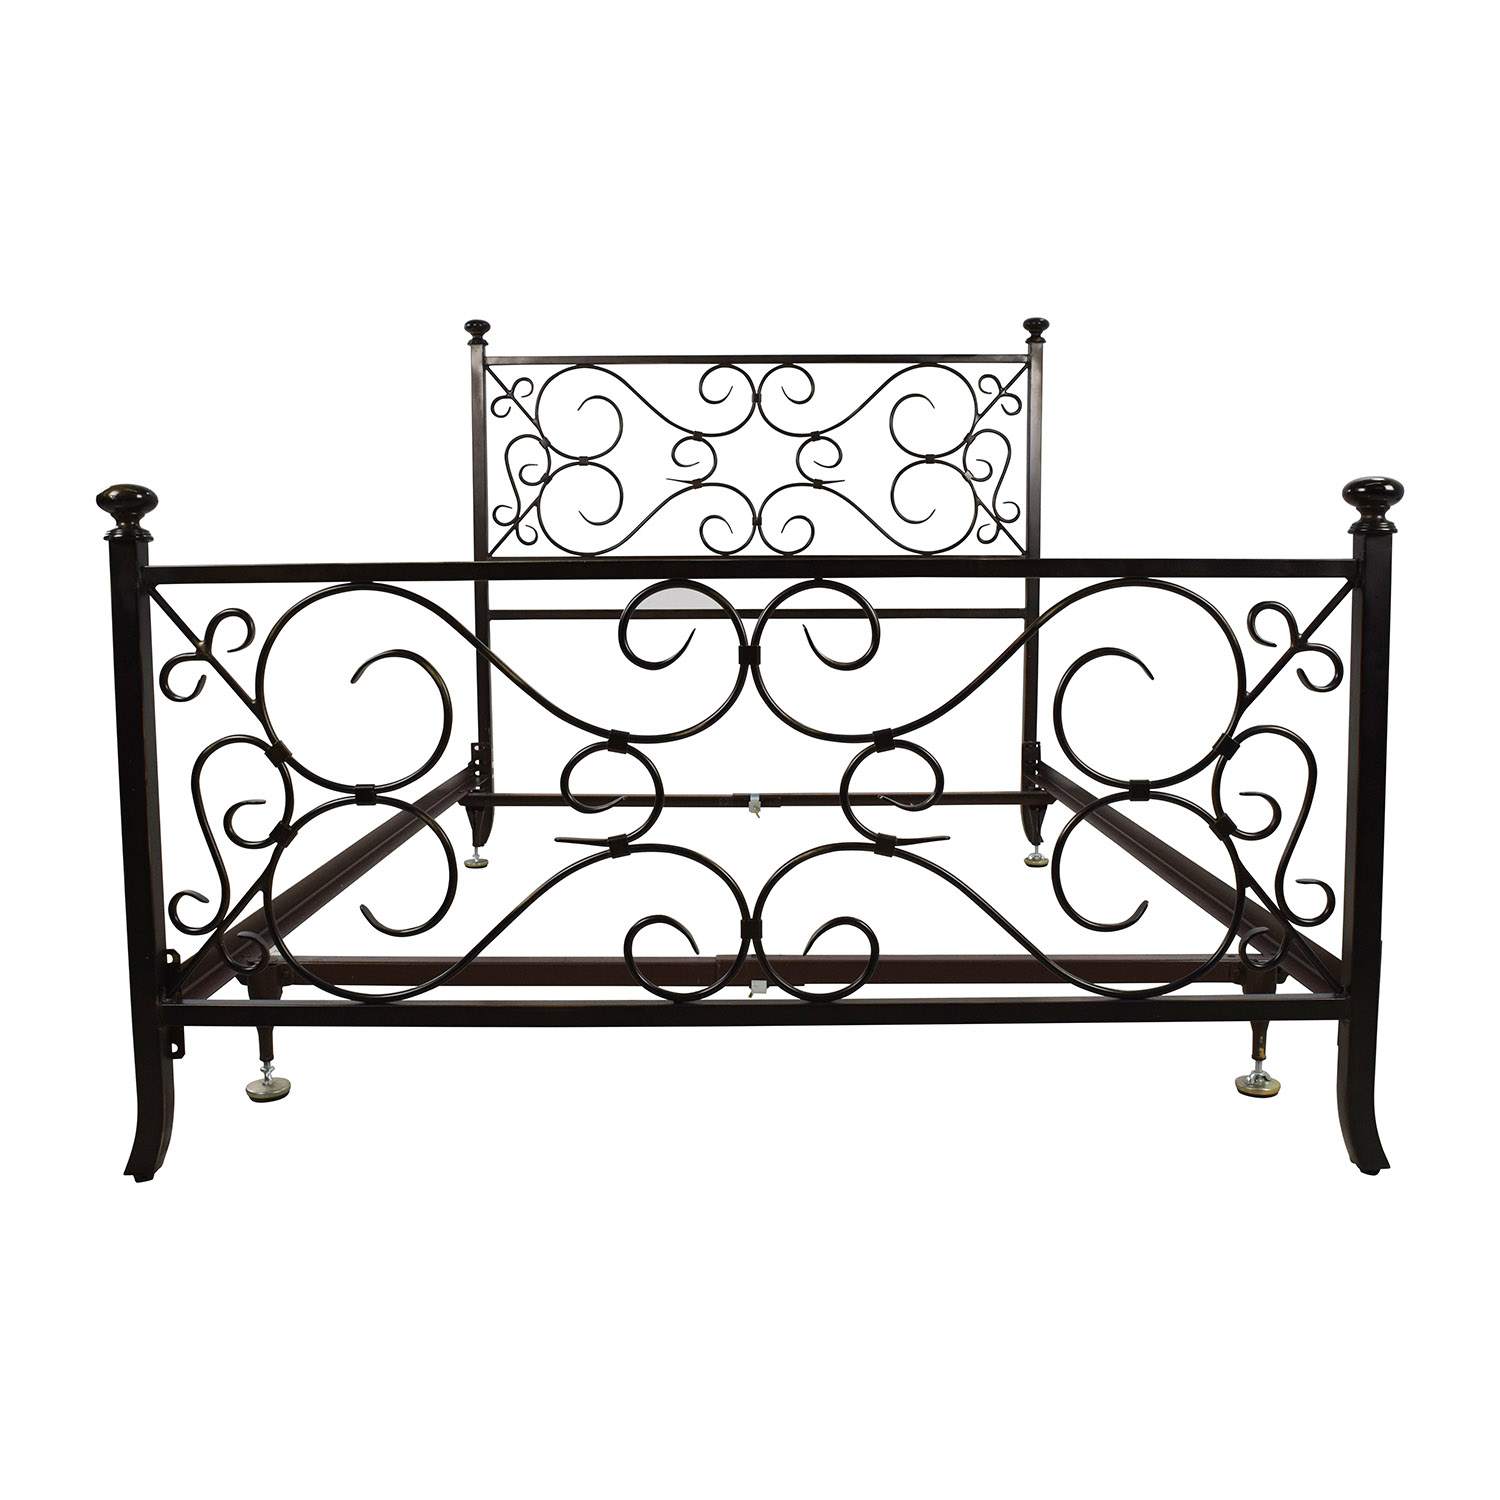 69% OFF - Black Scrolled Metal Bed Frame / Beds